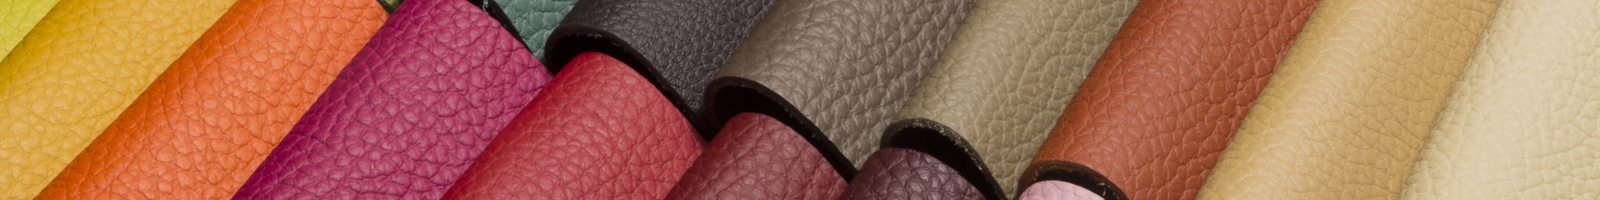 Leather recoloring in Dubai | Leather Leader Upholstery LLC